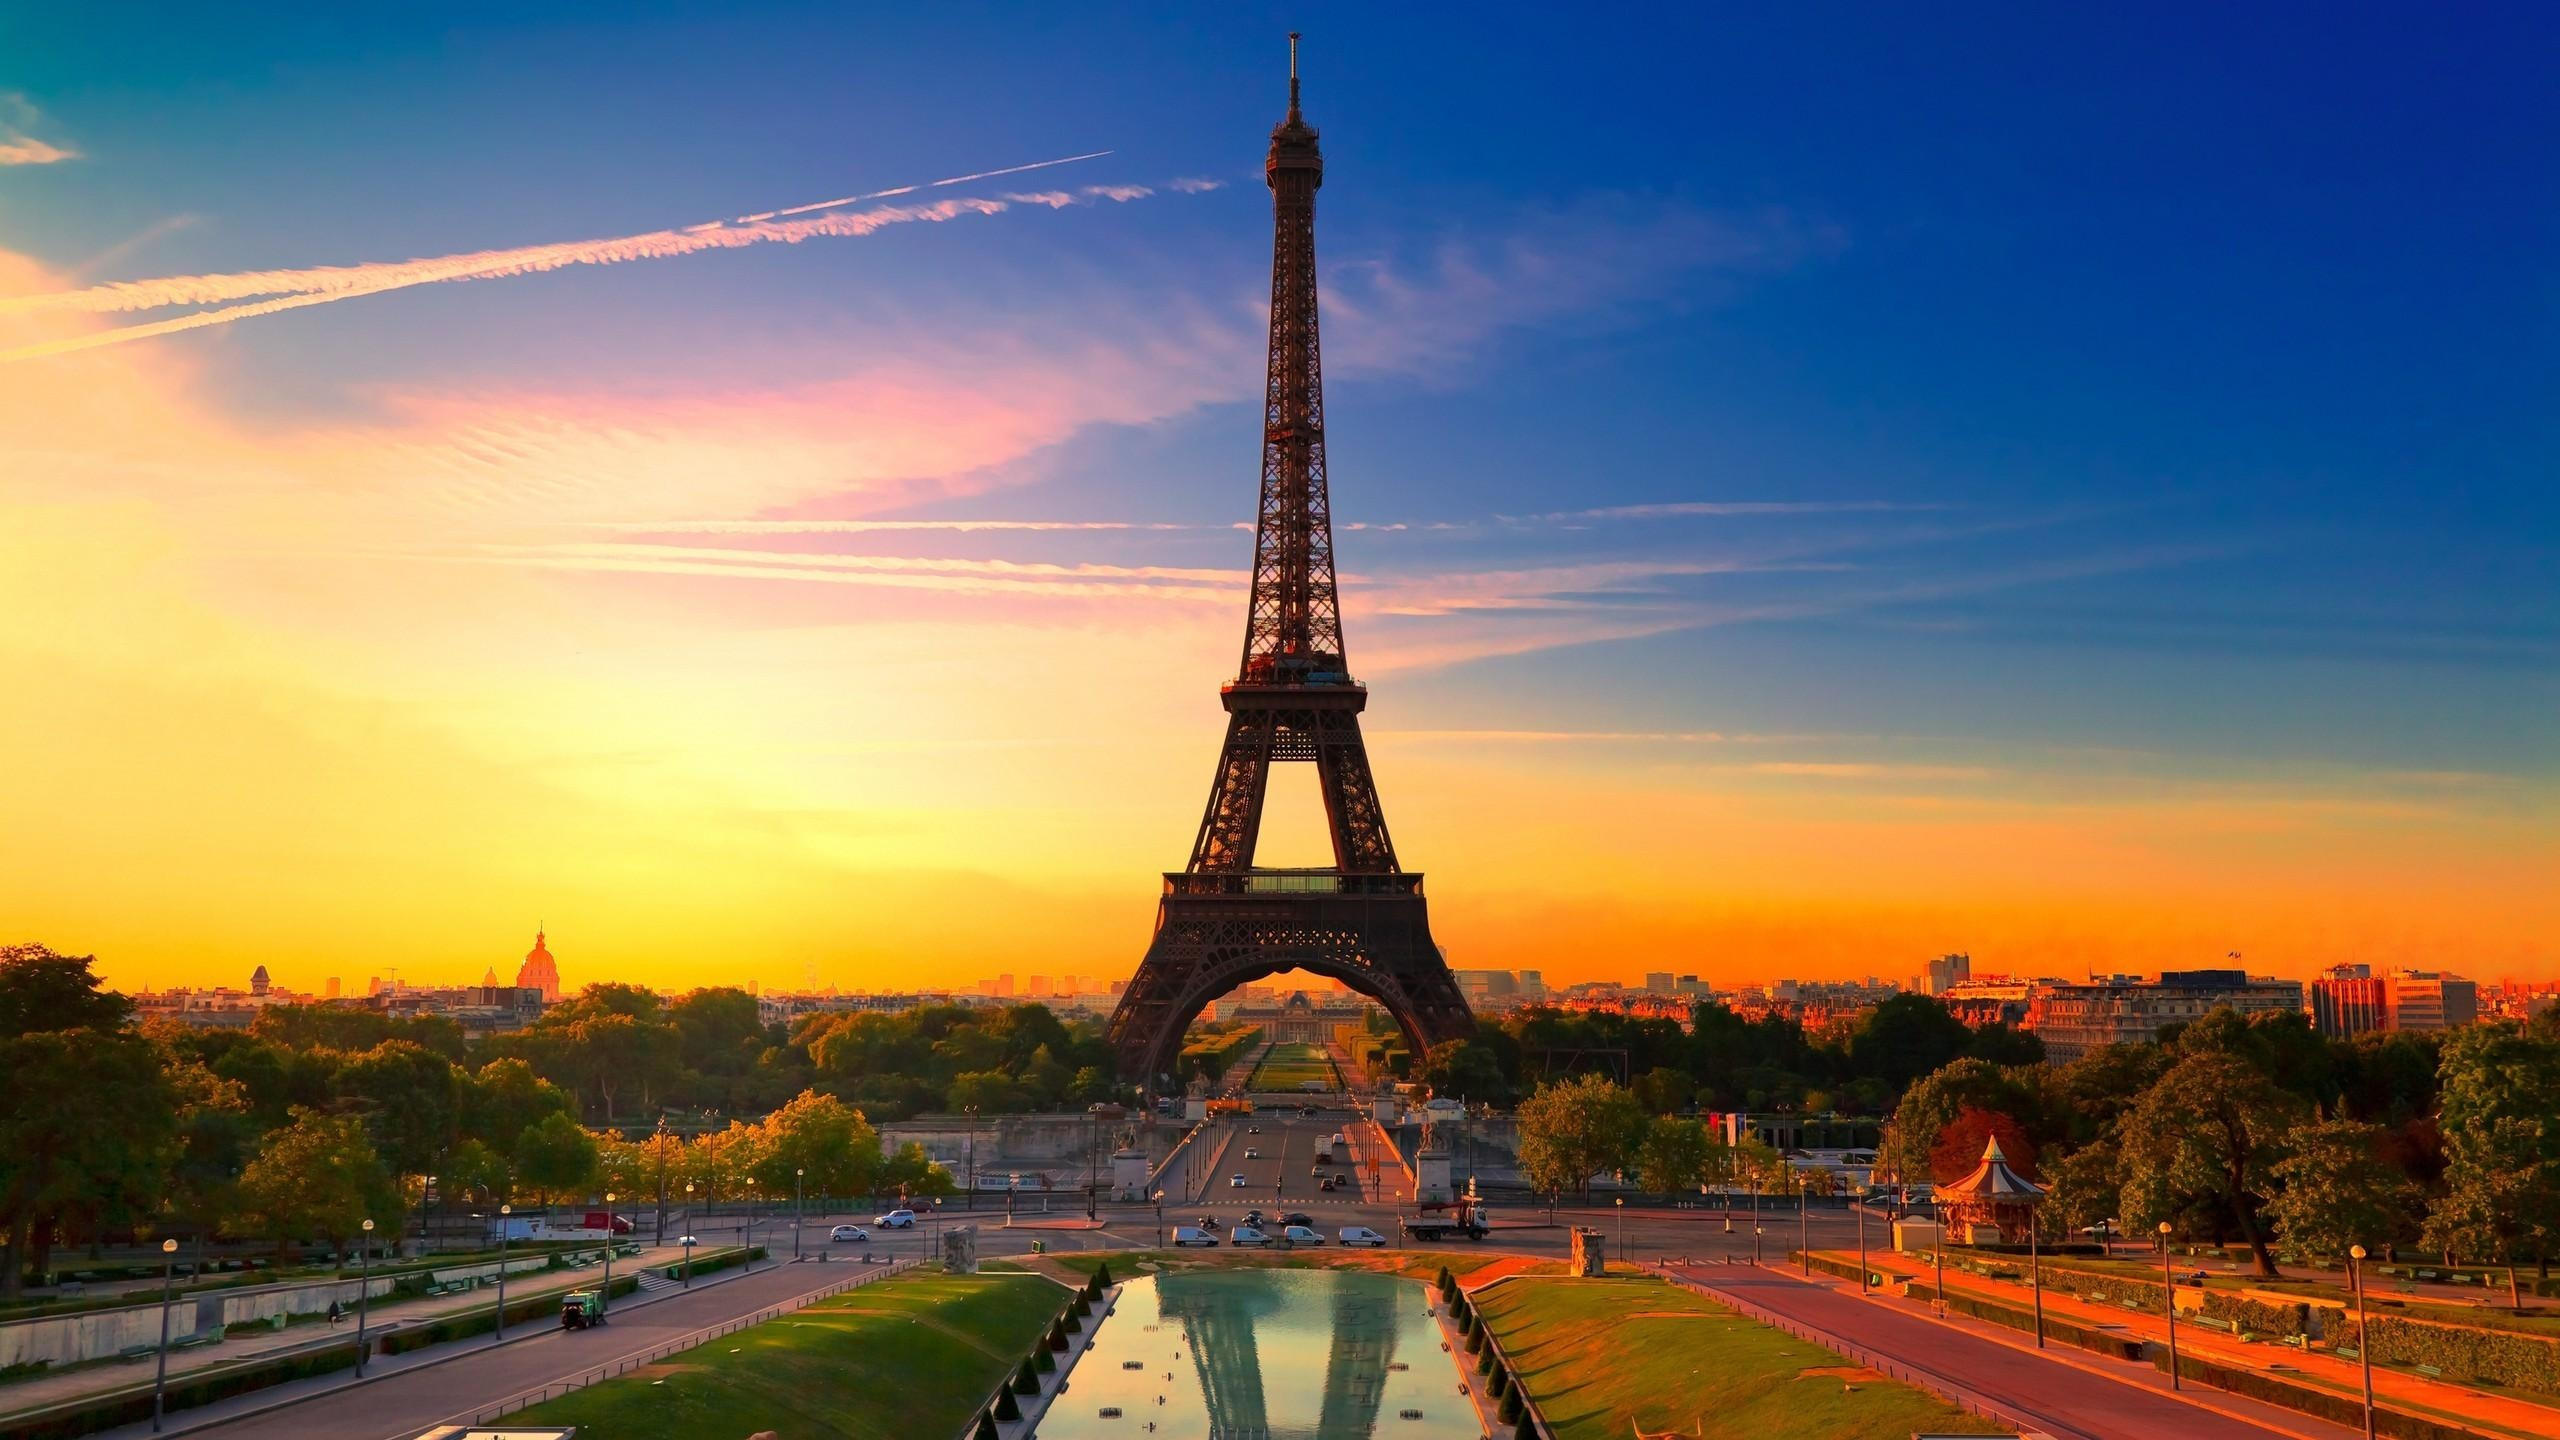 Download Eiffel Tower at Evening Sun — 2560x1600